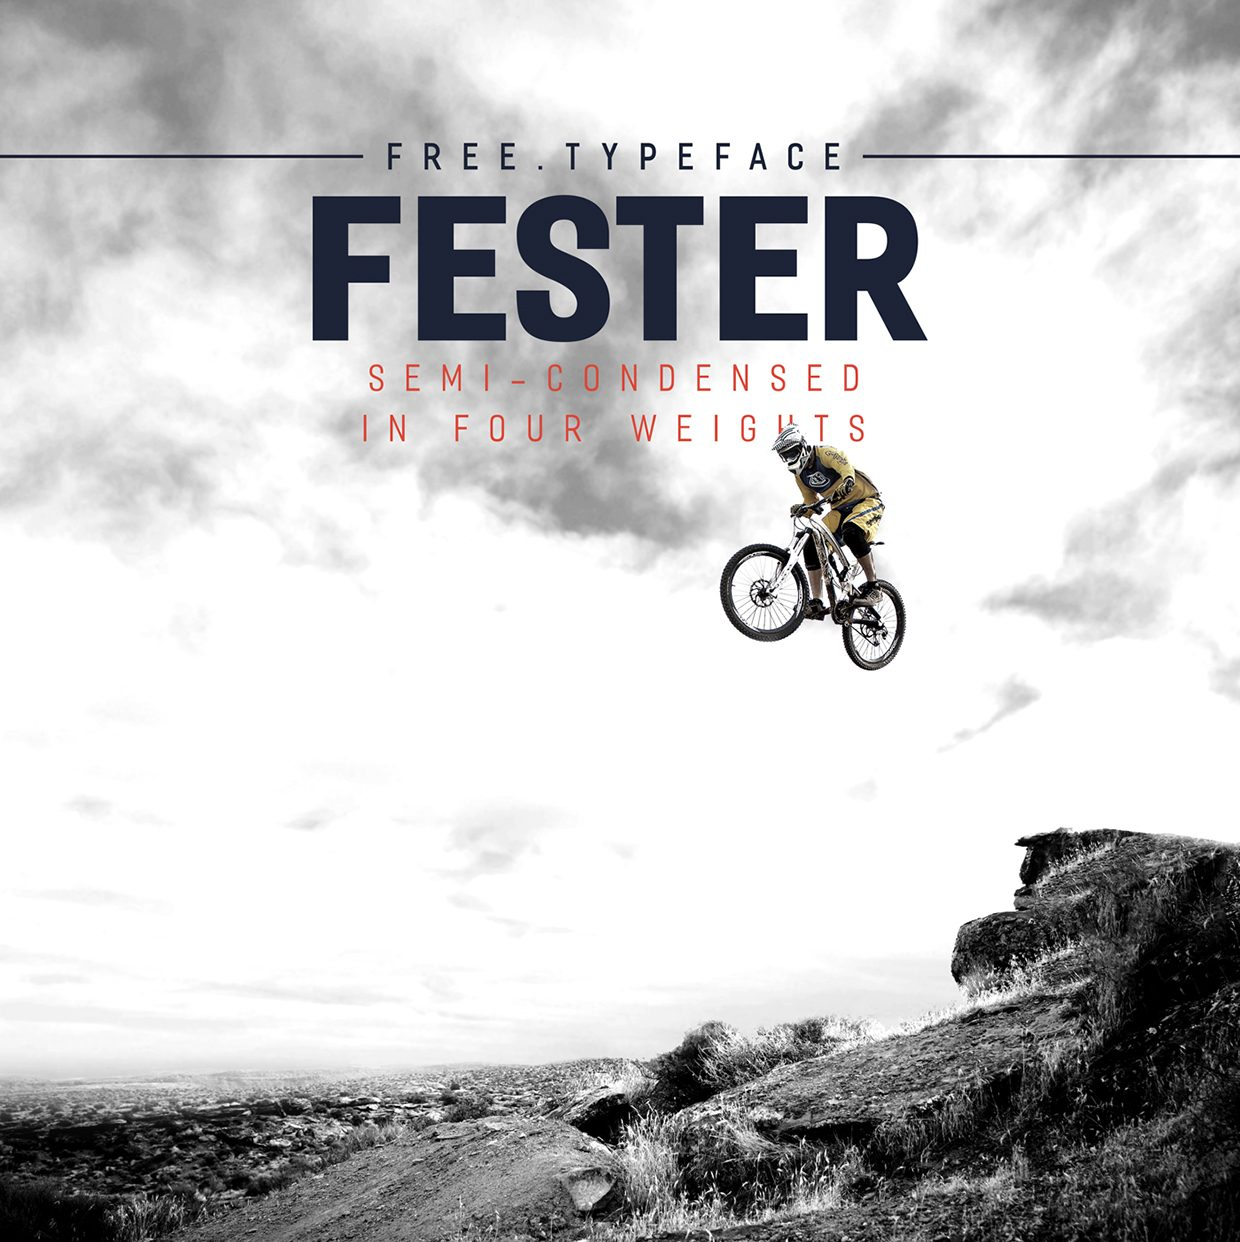 Fester Semi-condensed Medium font